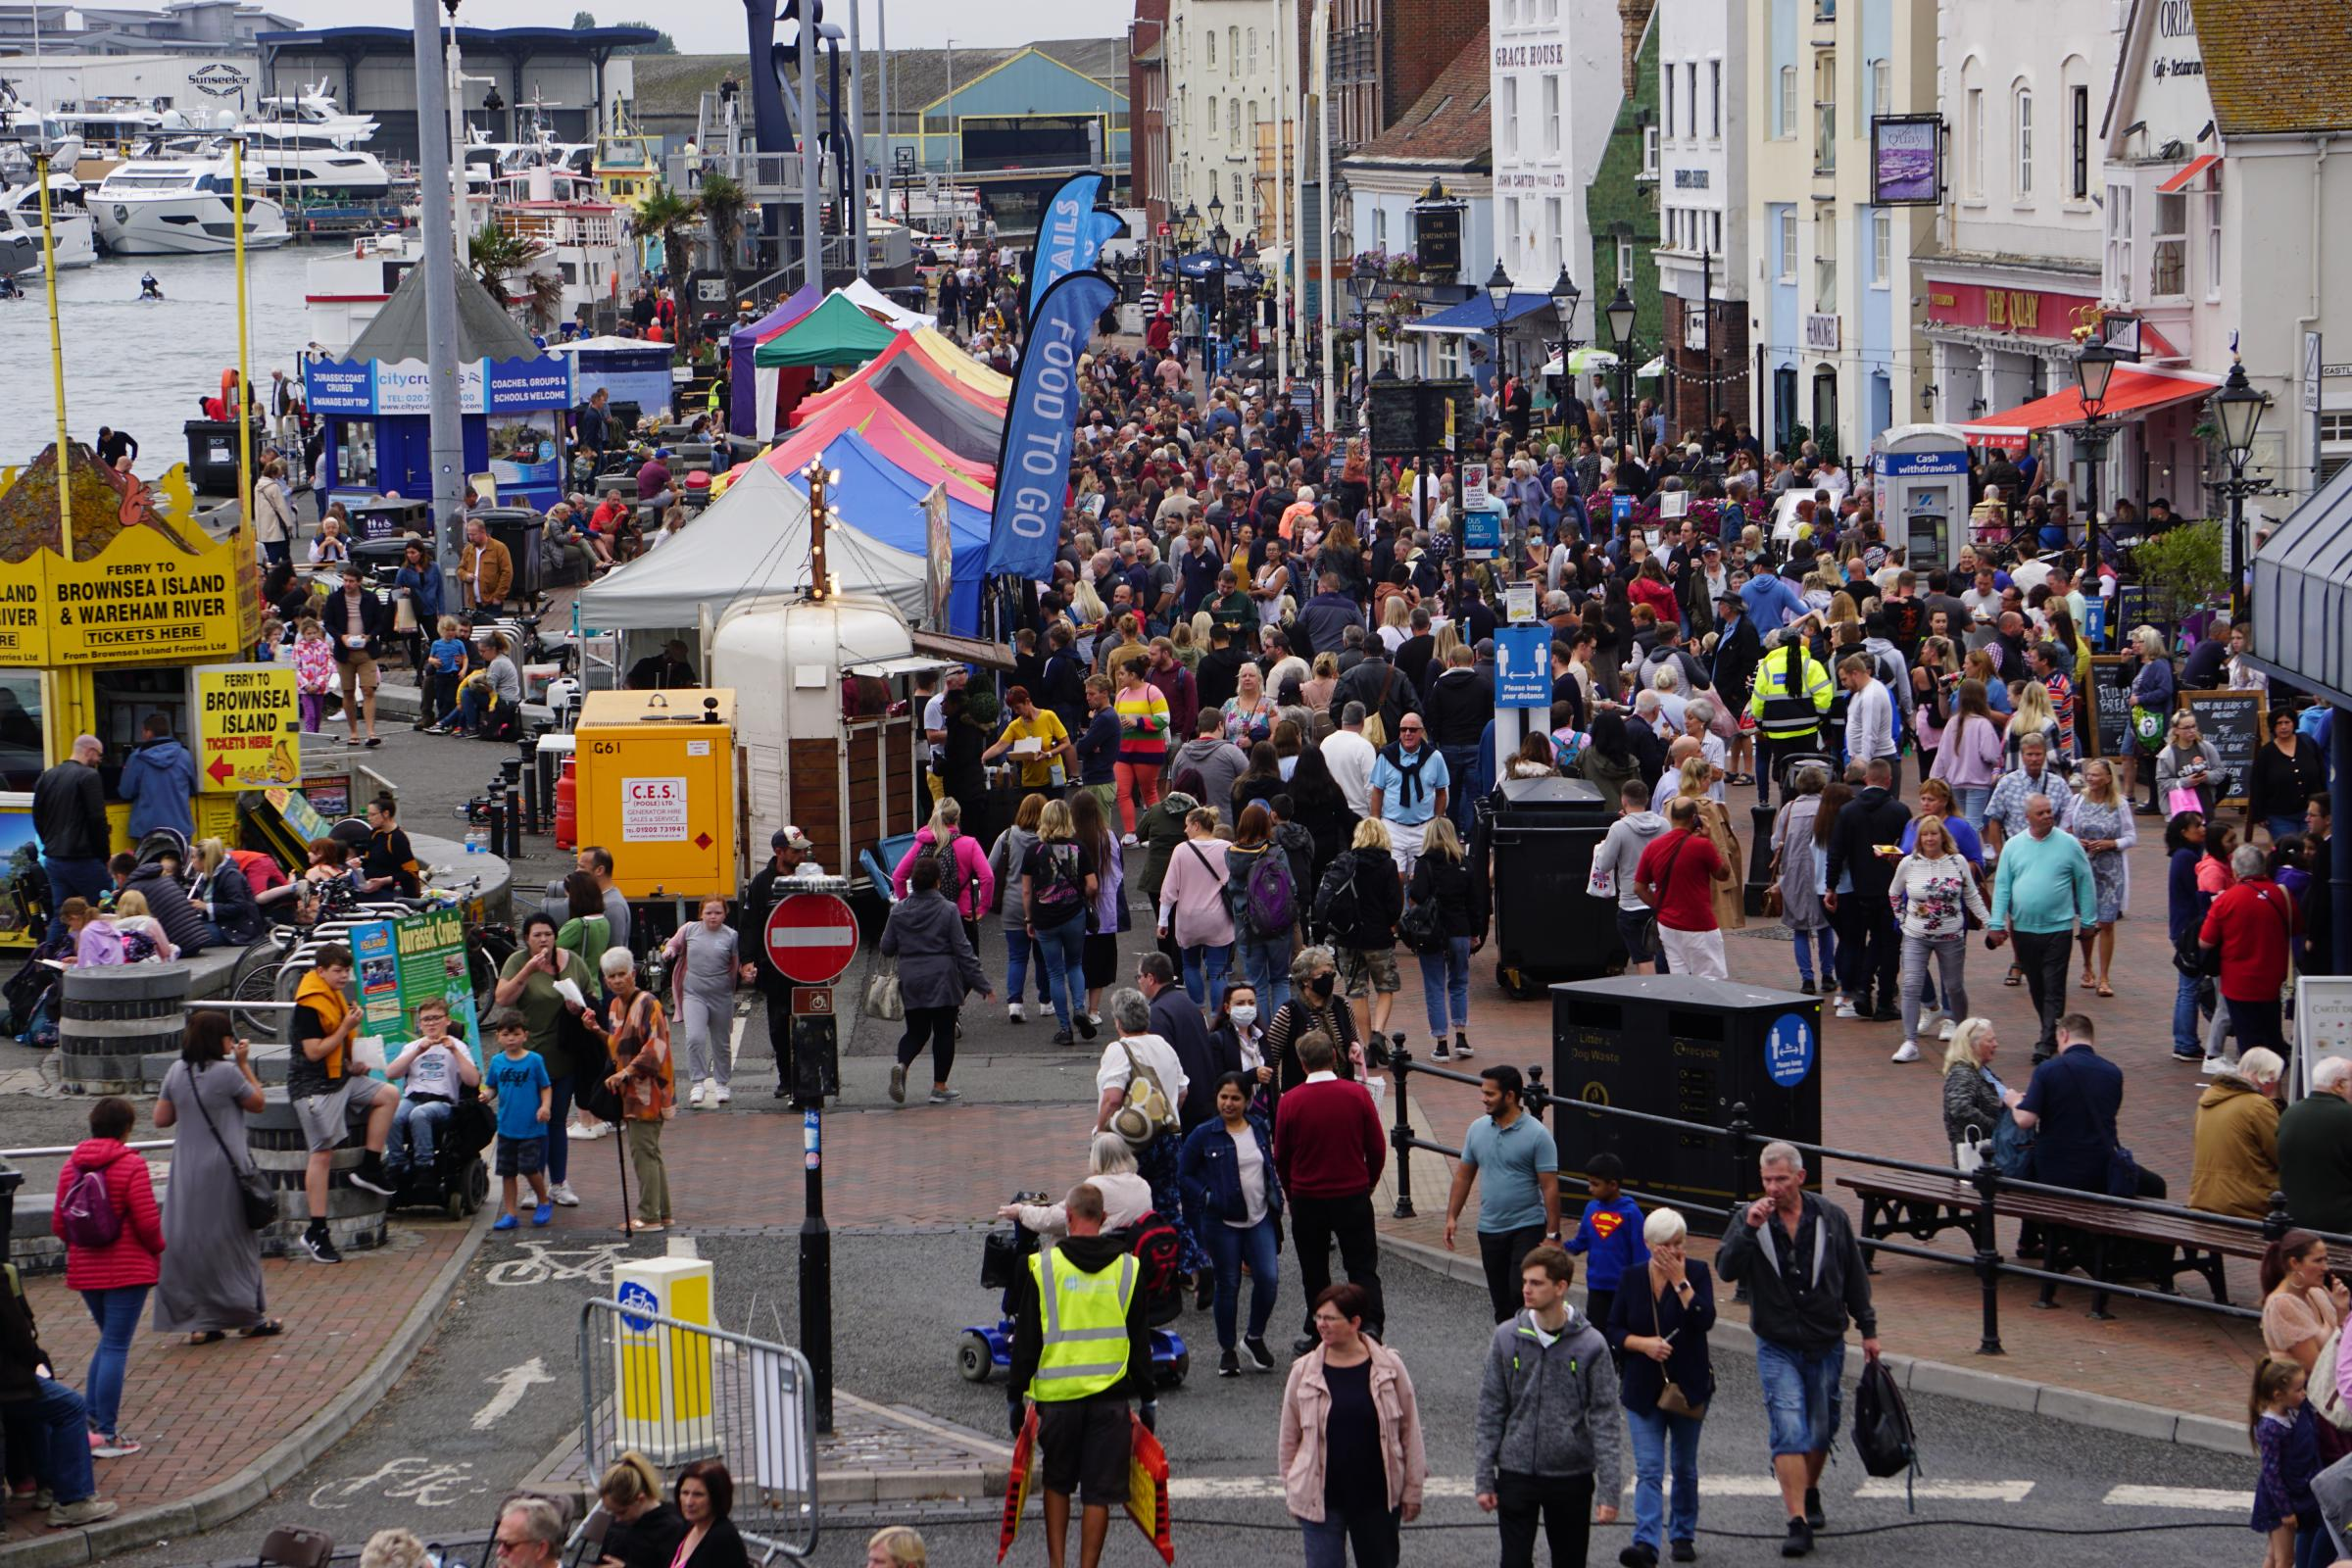 Crowds flock to Poole Quay for first day of Poole Seafood Festival